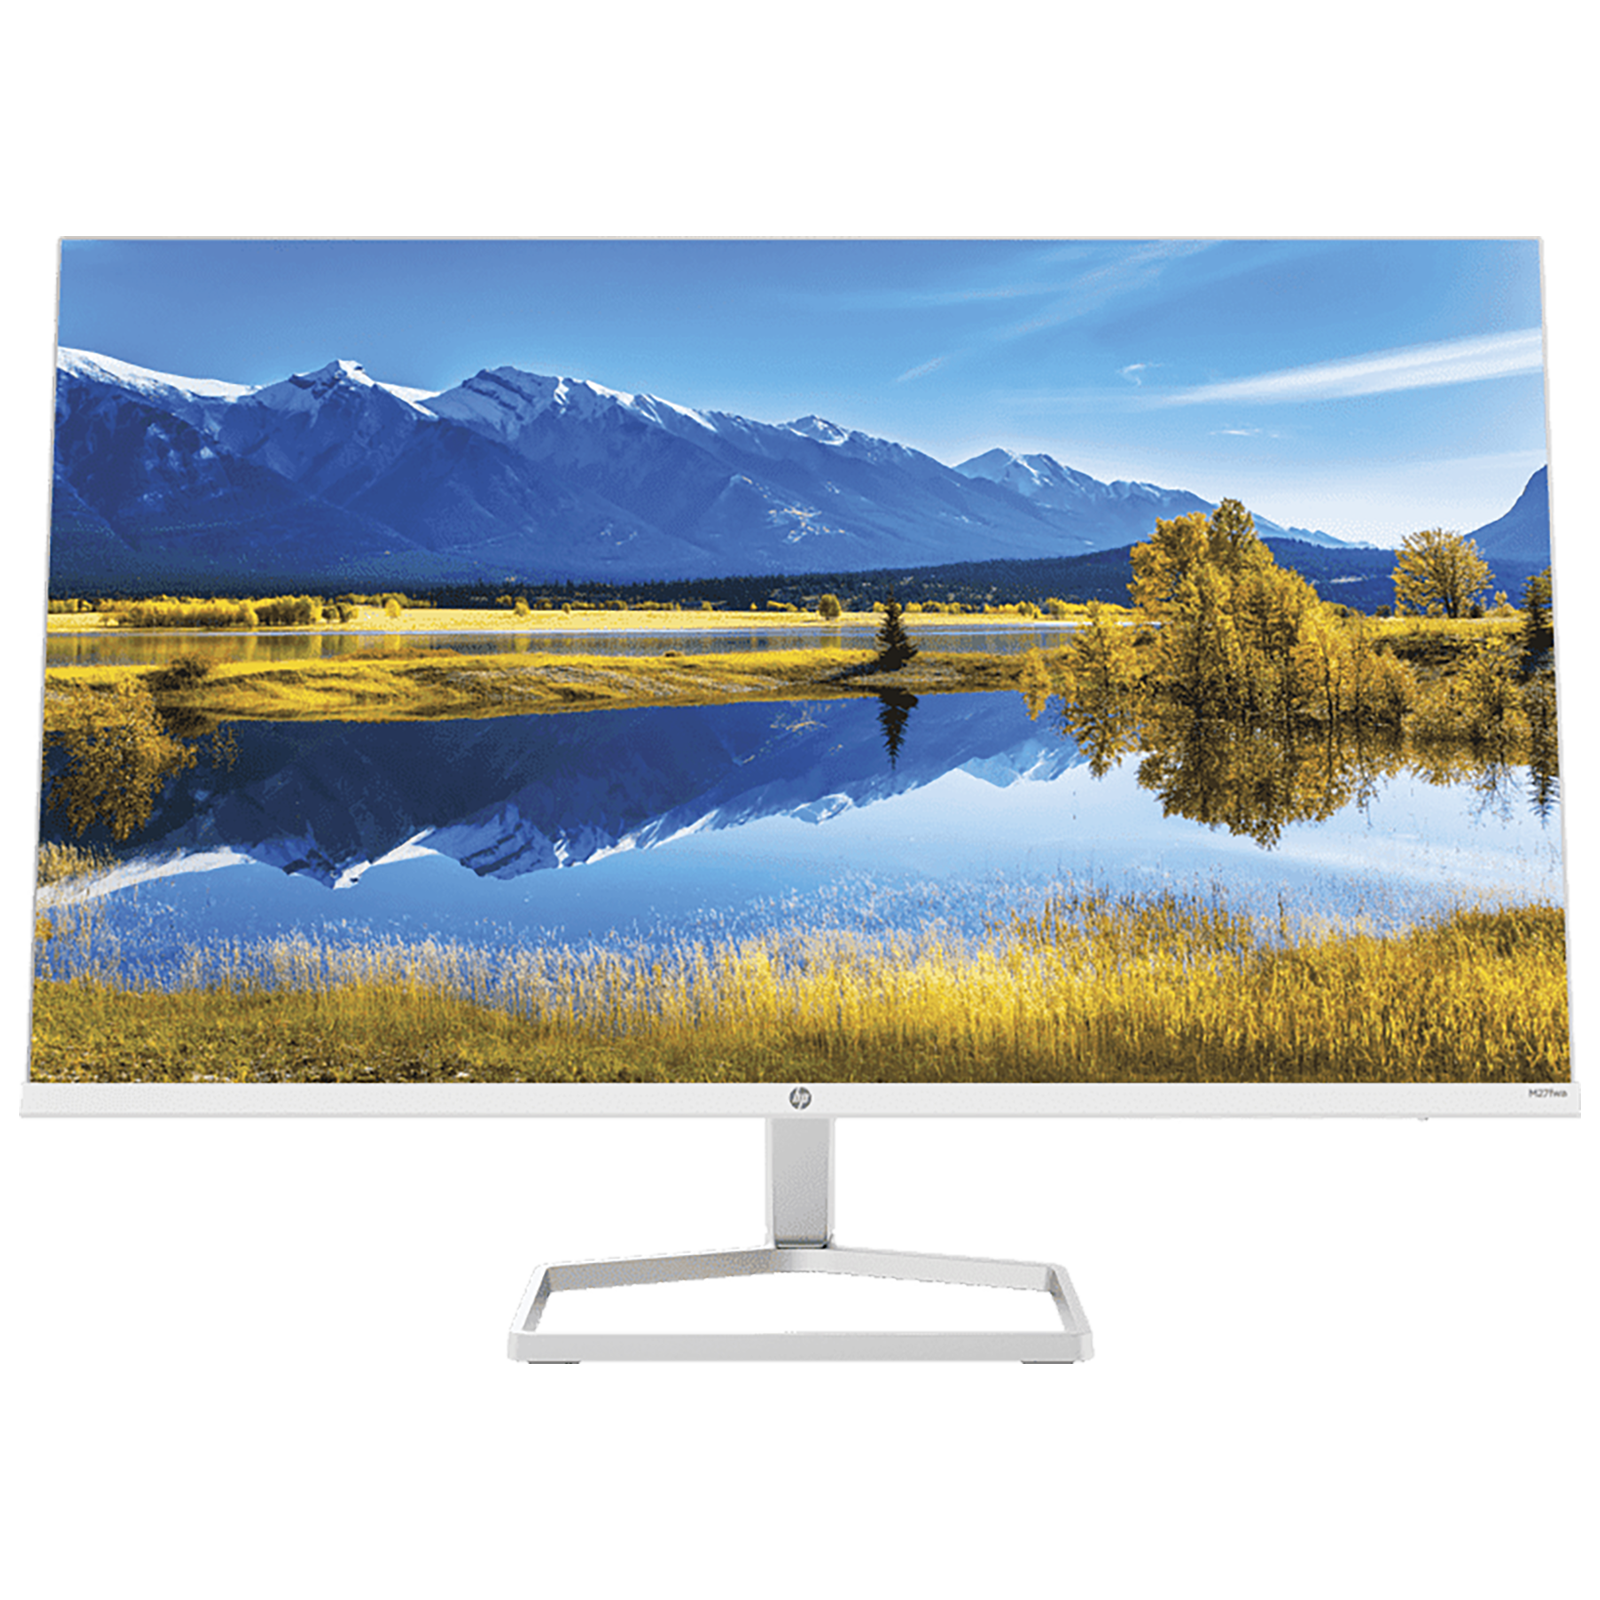 HP M27FWA 60.58cm (27 Inches) Full HD Monitor (HP Eye Ease with Eyesafe Certified Technology, 1 x HDMI 1.4 | 1 x VGA Port Connectivity, 356D6AA, Silver)_1